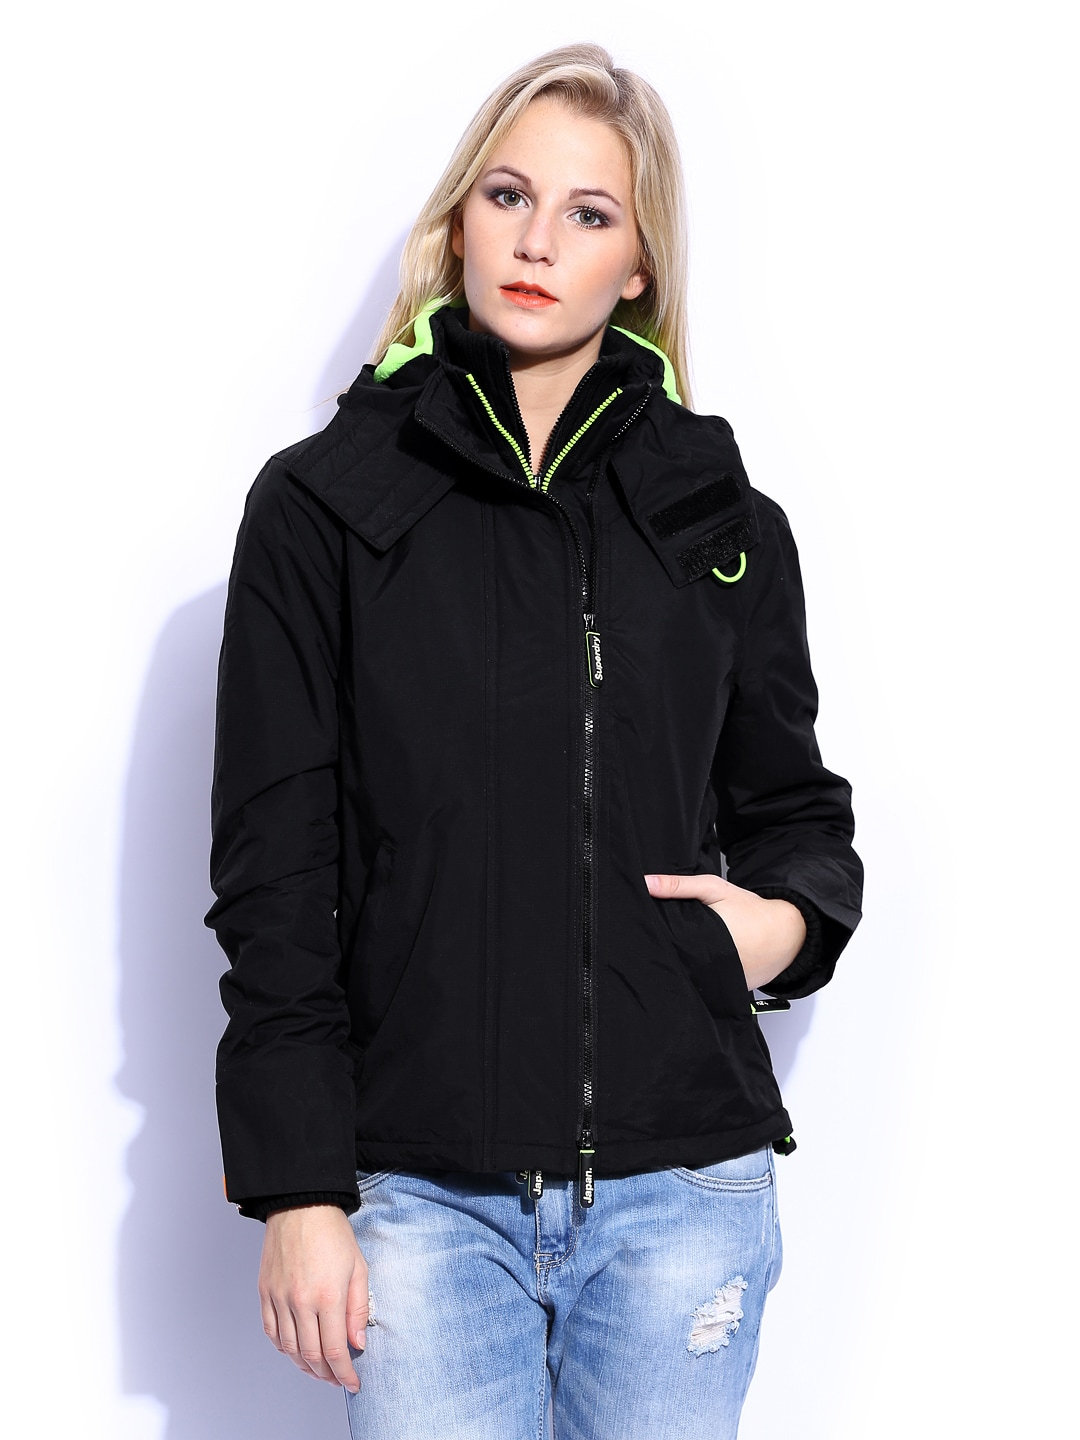 Buy superdry jackets online